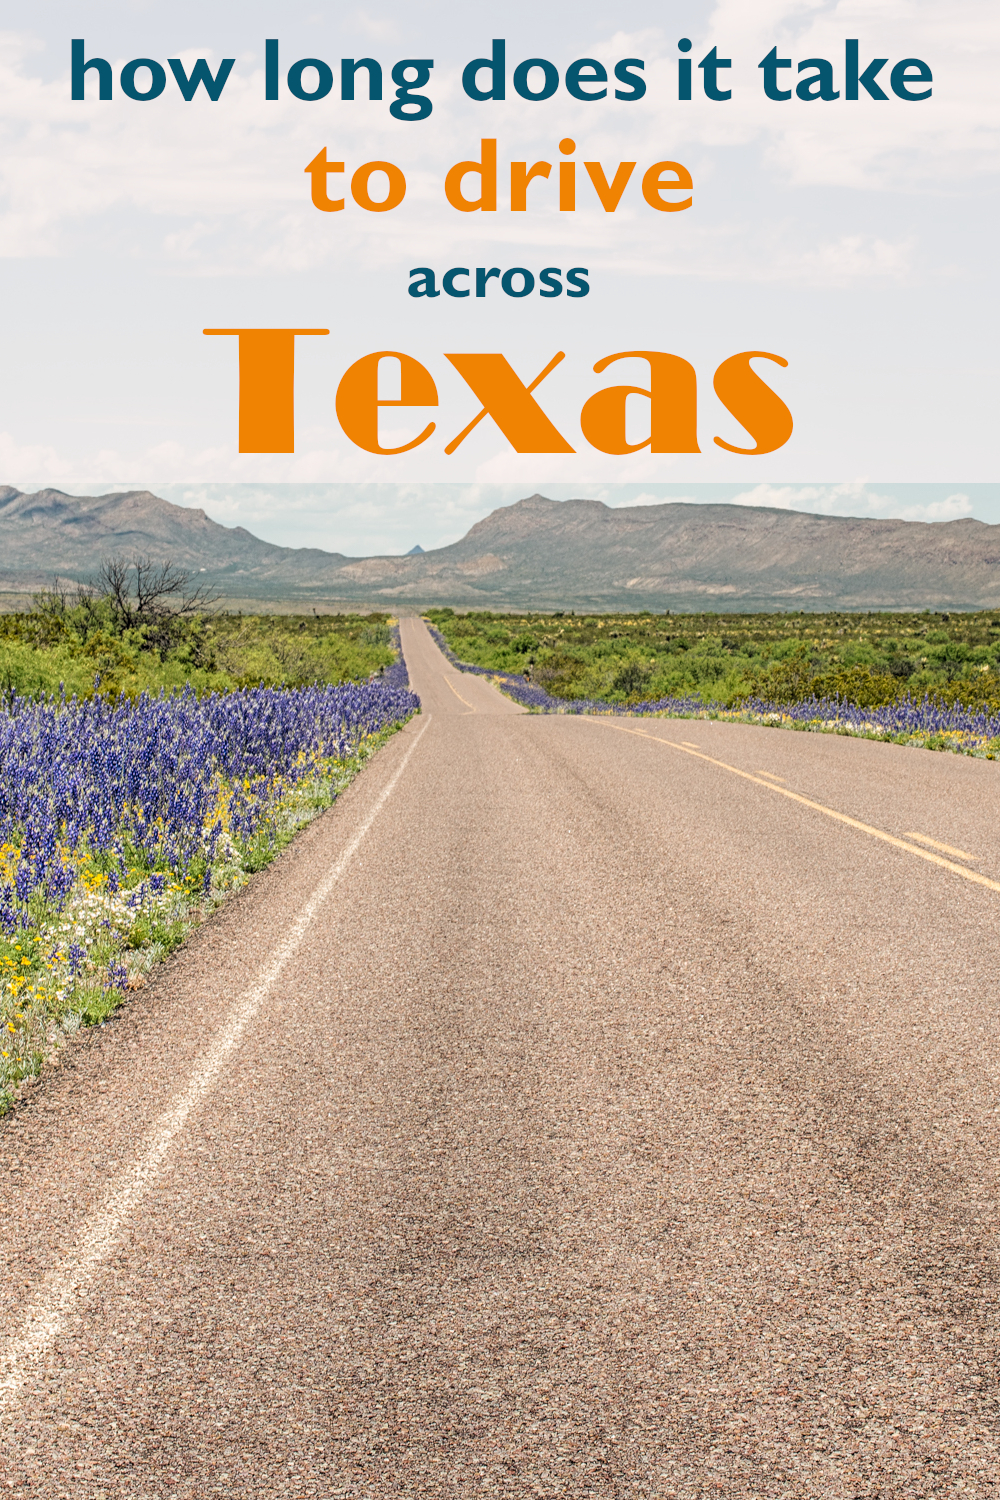 How long does it take to drive across Texas - complete guide for different routes and tips for saving time